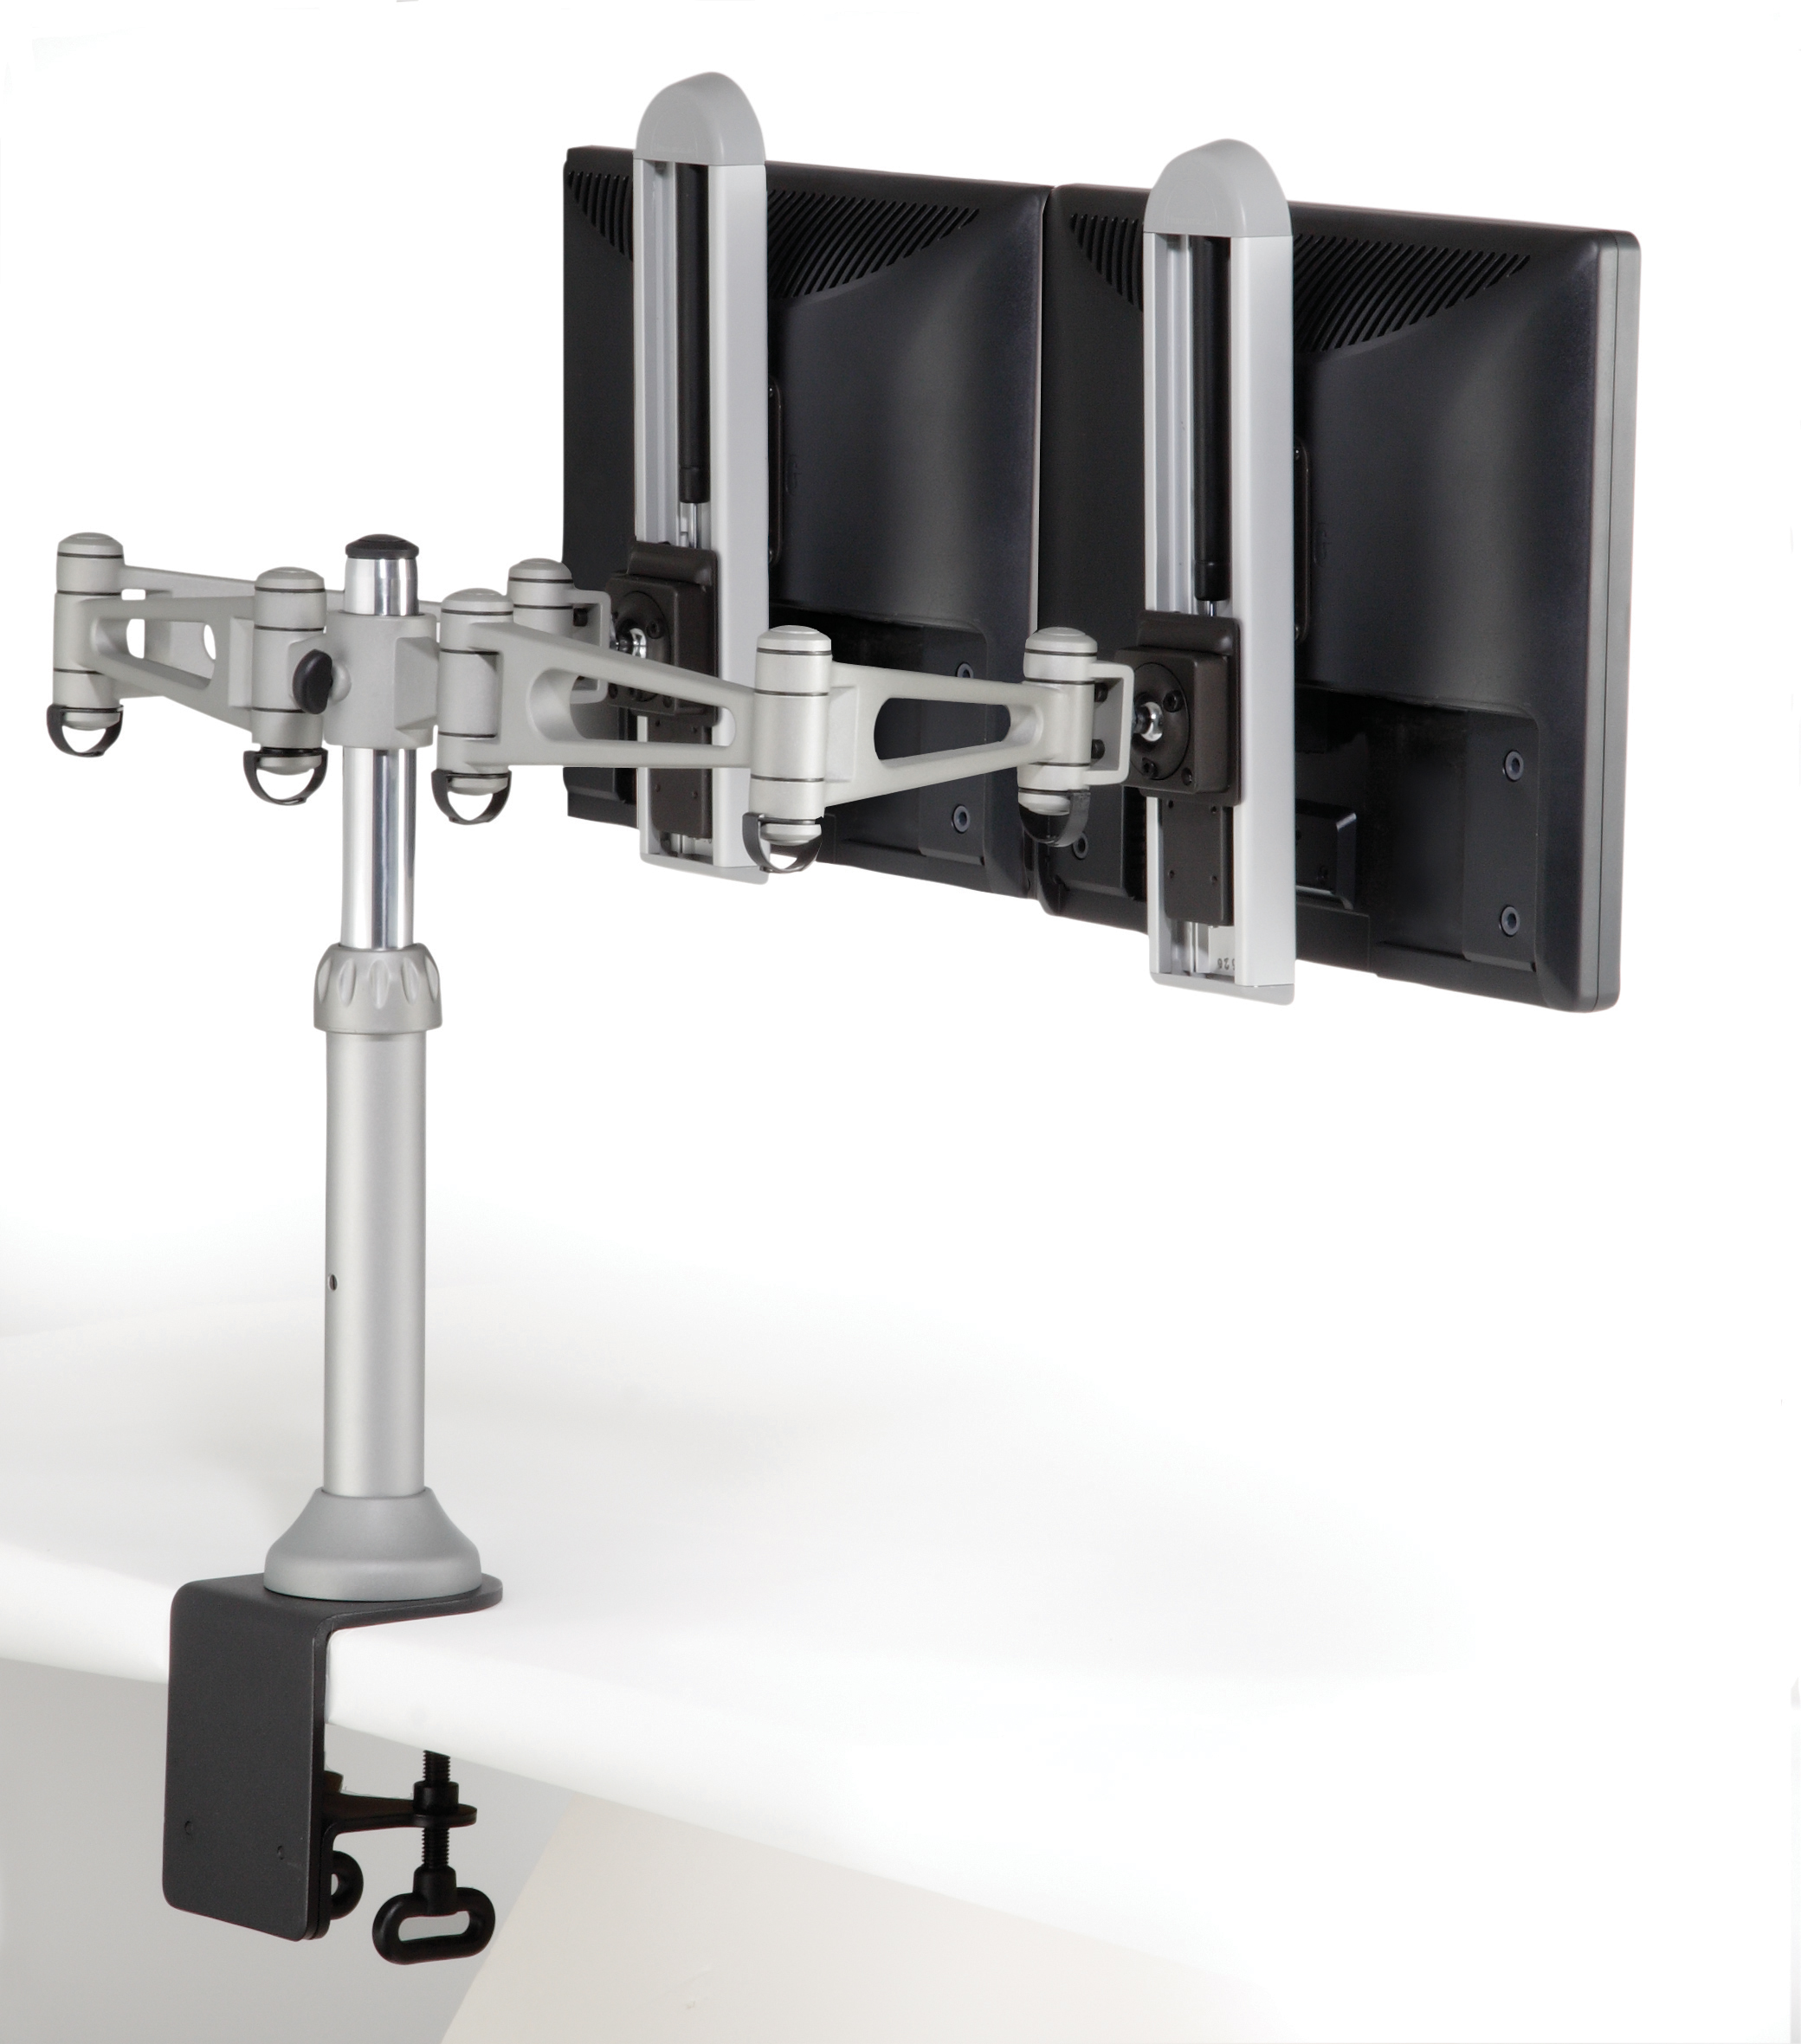 Monitor Arm Rm7 Desk Top Mount Clamp Style Dual Holder Shown With Front End Adjusters